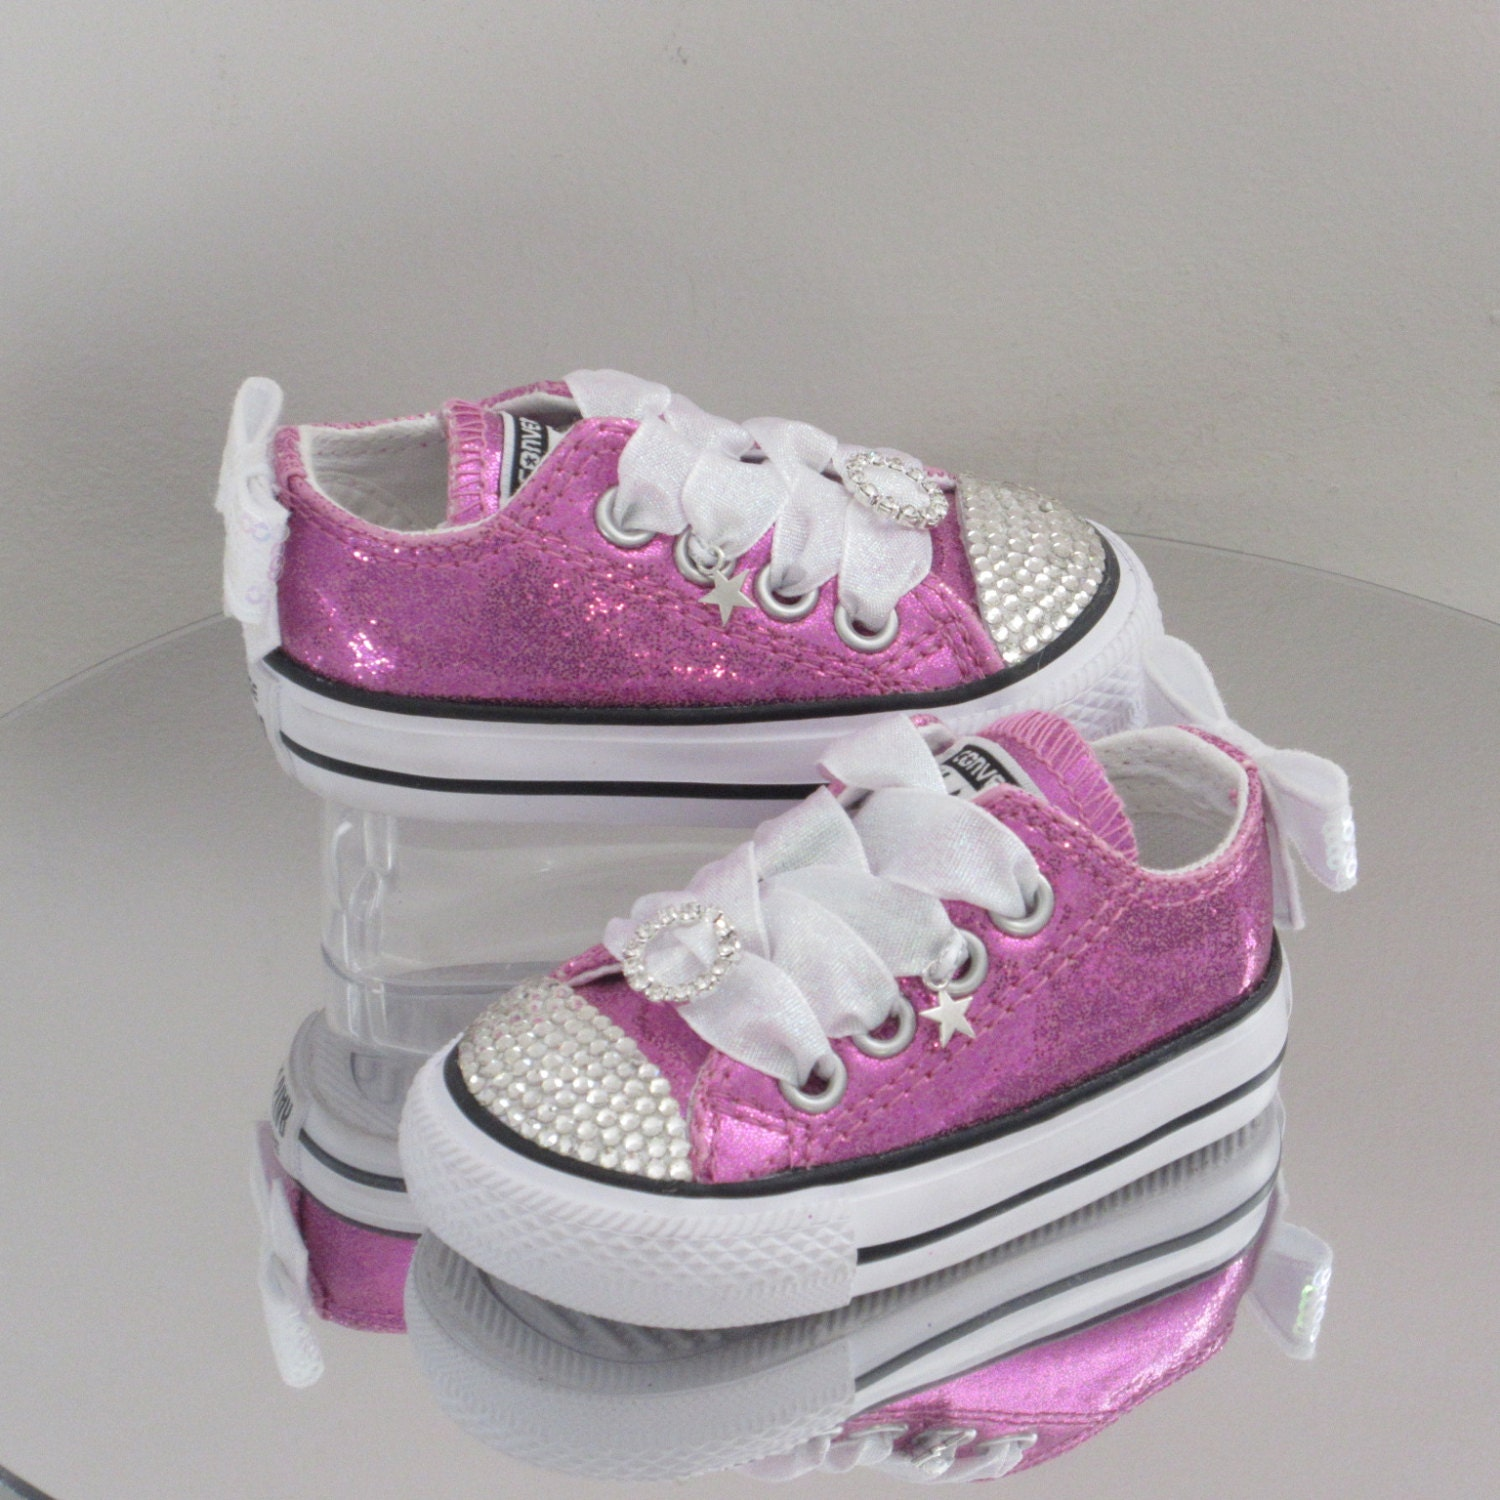 4a763f62723c Pink Glitter Baby   Toddler Custom Crystal  Bling  Converse Sizes 2 - 10